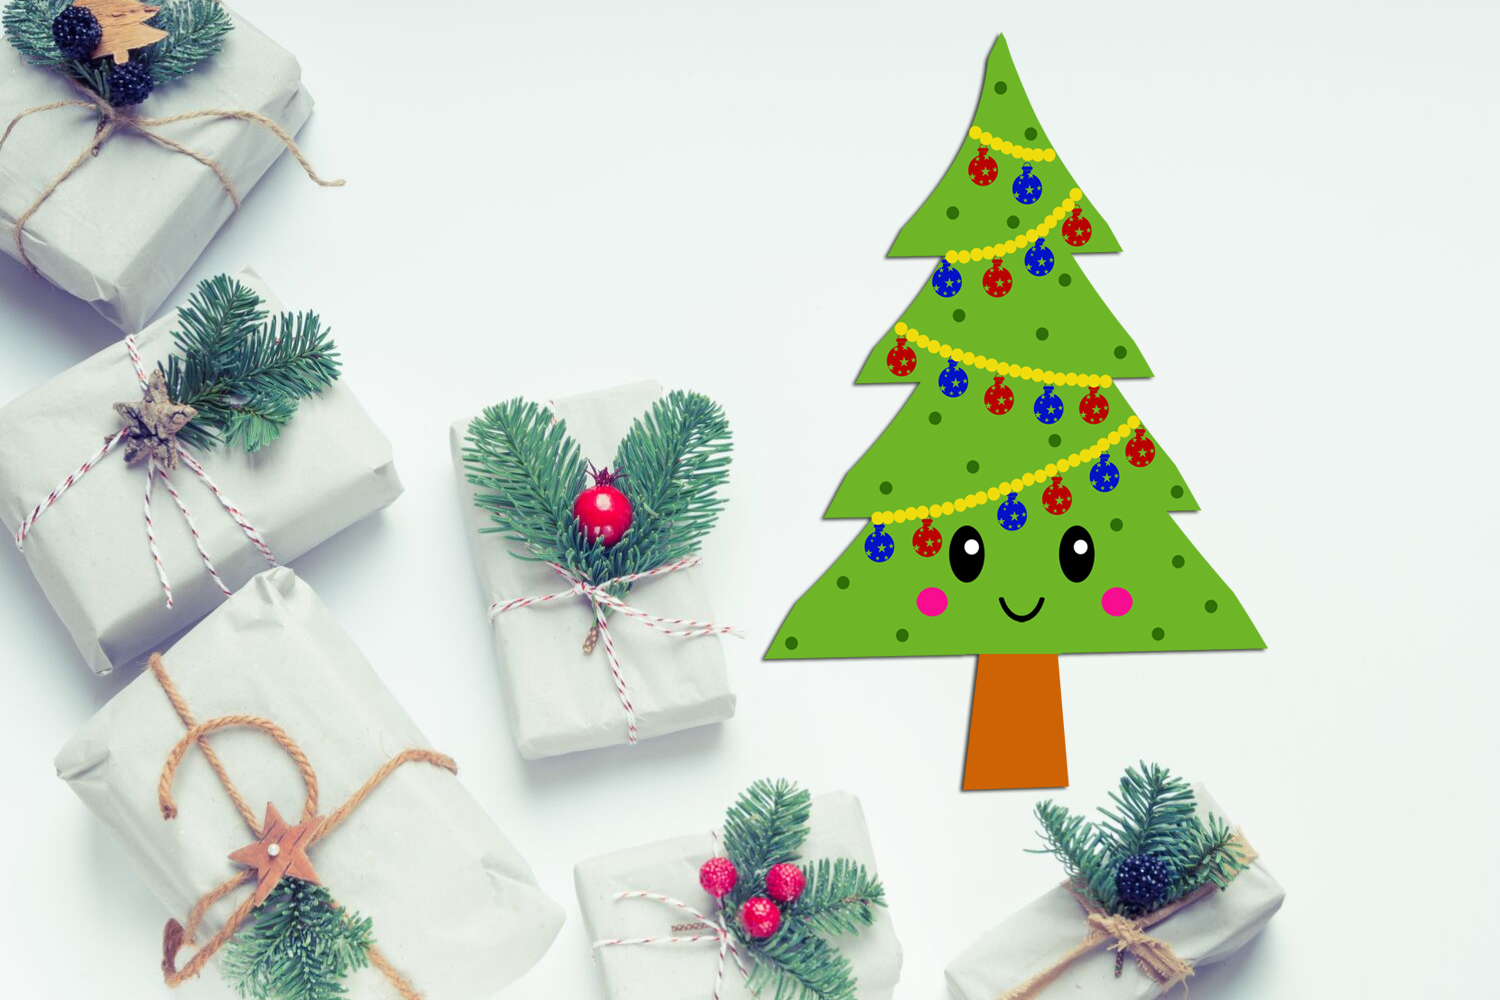 Cute Kawaii Christmas Trees Clipart- Xmas Trees Clipart example image 6